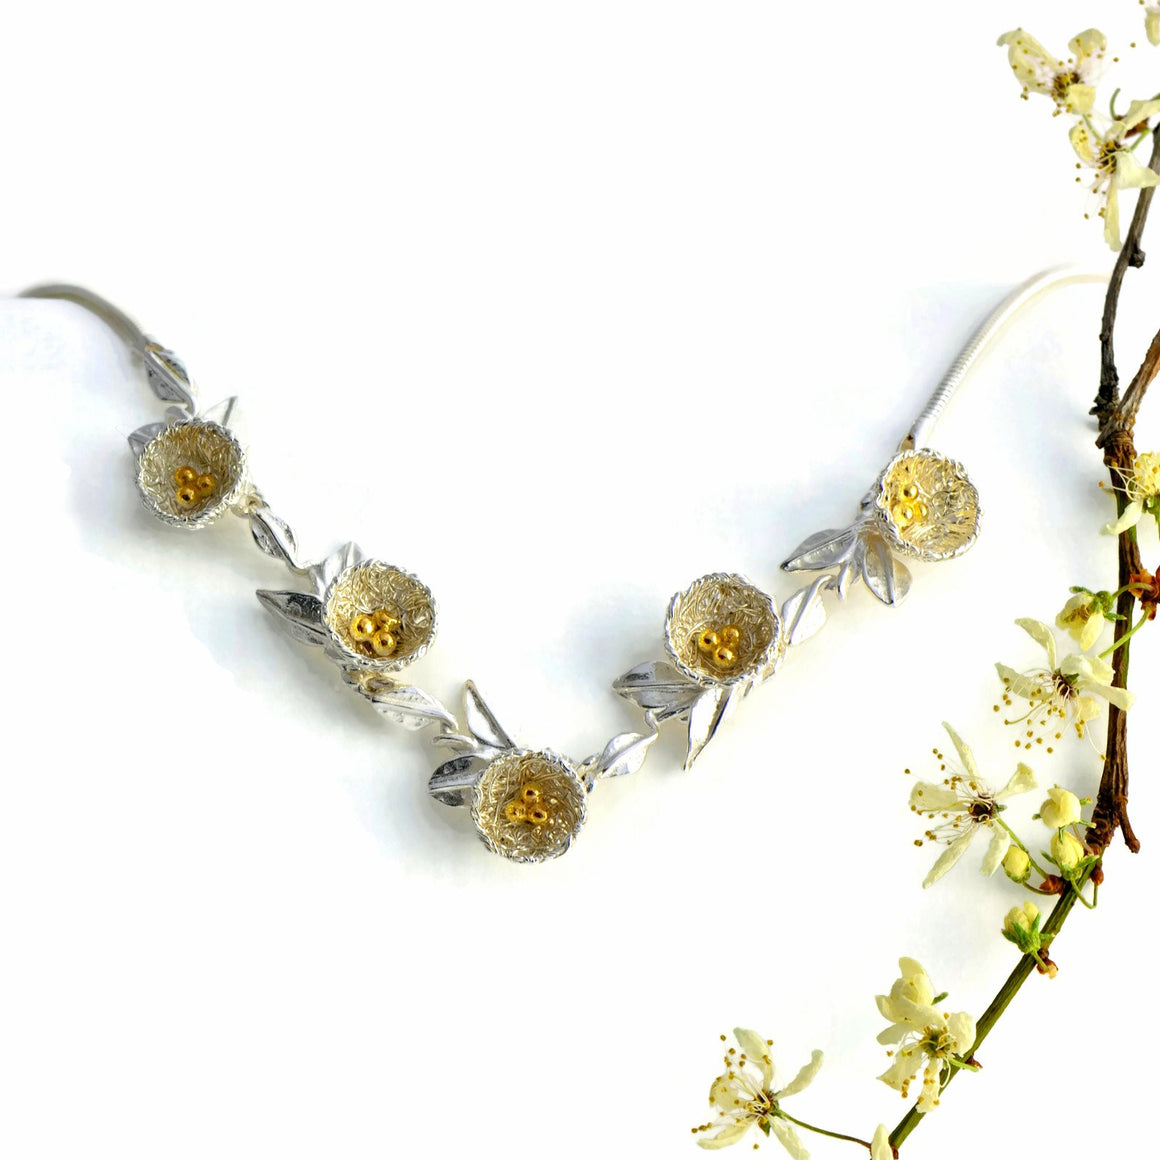 Bird's nest necklace with five Nests, Golden Eggs, and Golden Bird